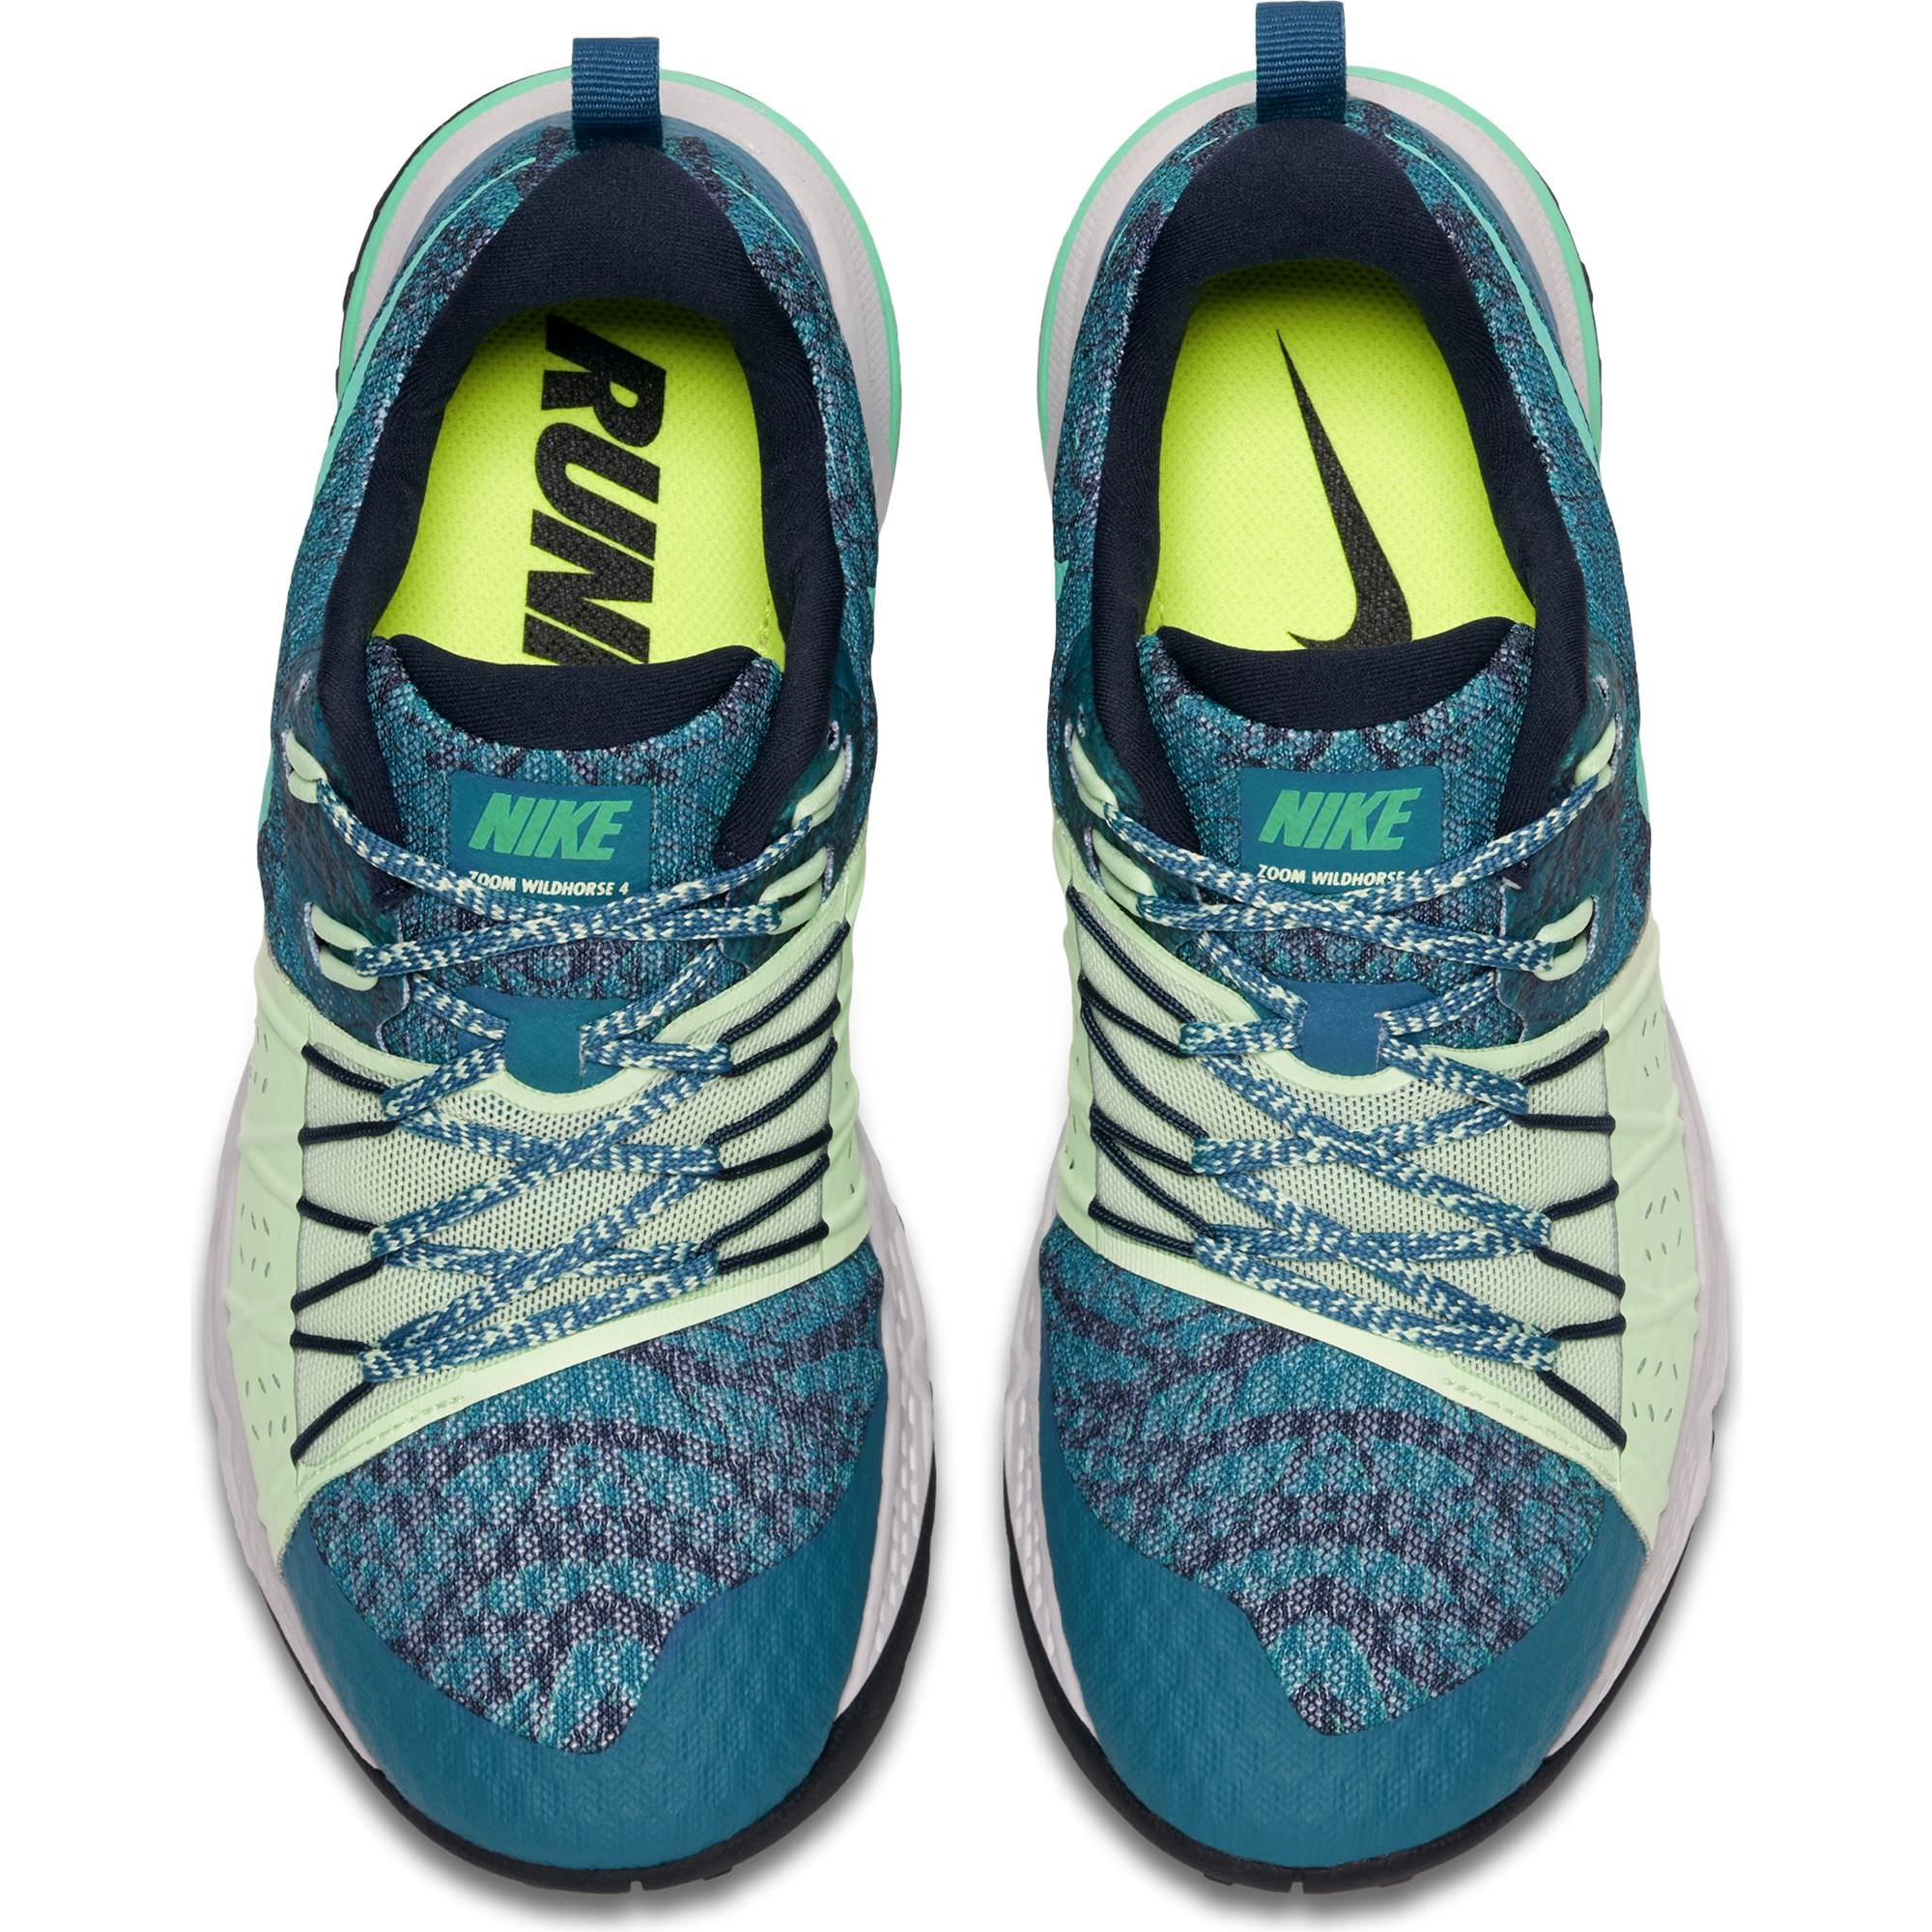 NIKE Women's Air Zoom Wildhorse 4 Running Shoe Green Abyss/Menta-Obsidian-Vapor Green 6.5 by NIKE (Image #3)